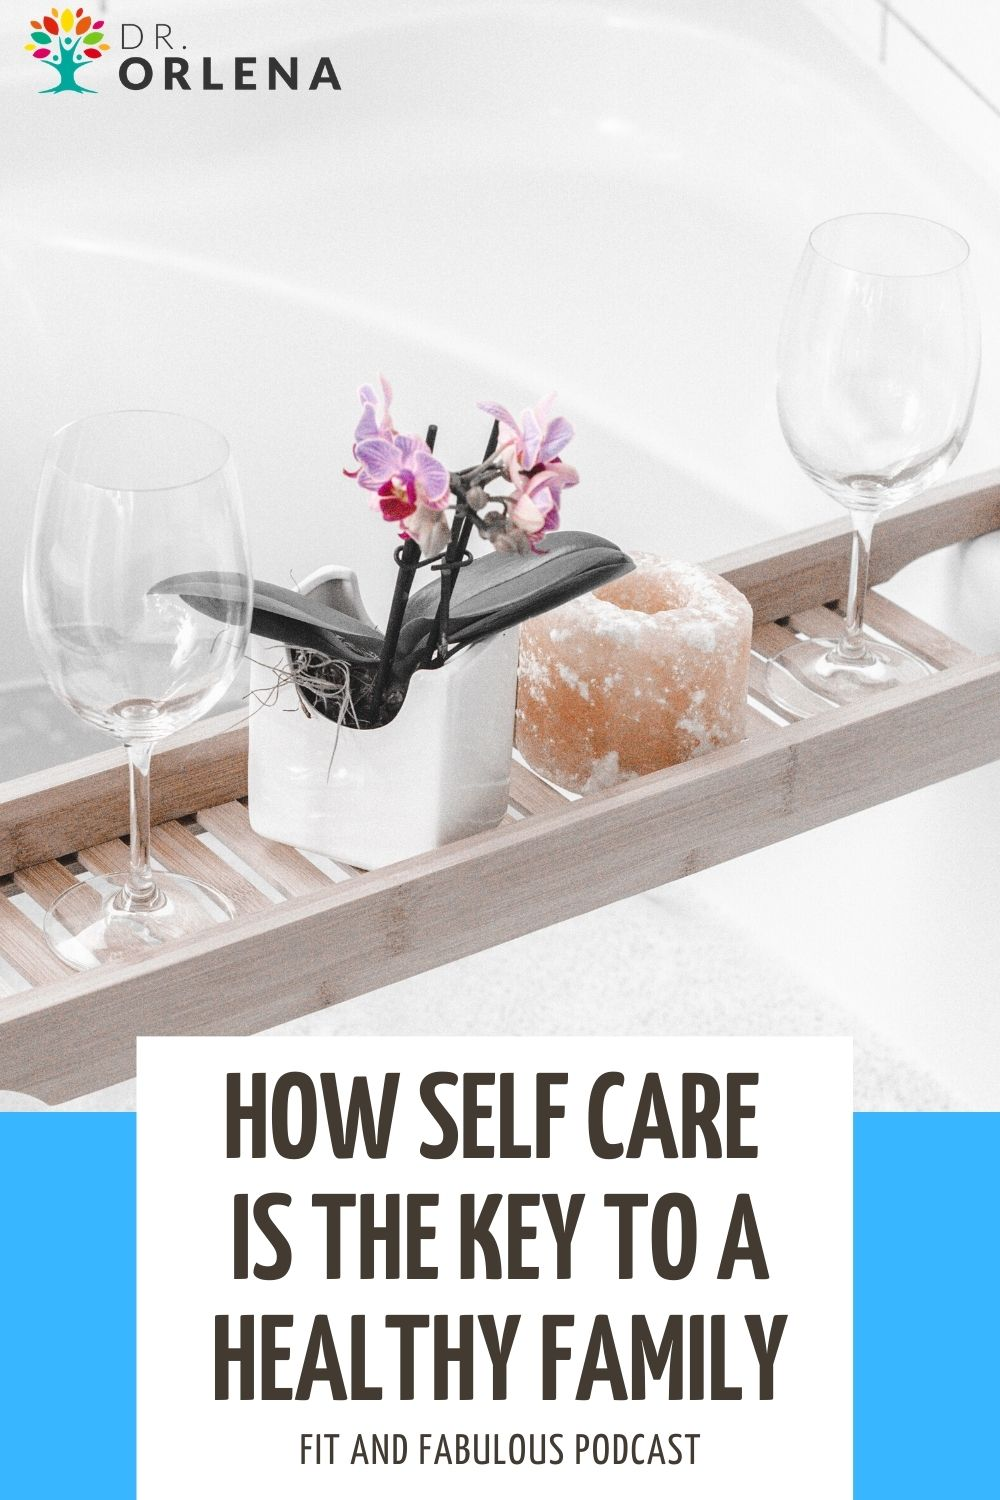 A photo of a pot of flower, wine glasses and bath salts placed ontop of a bathtub #selfcare #selflove #momhealth #wellness #healthyliving #healthylife #healthymom #healthyfamily